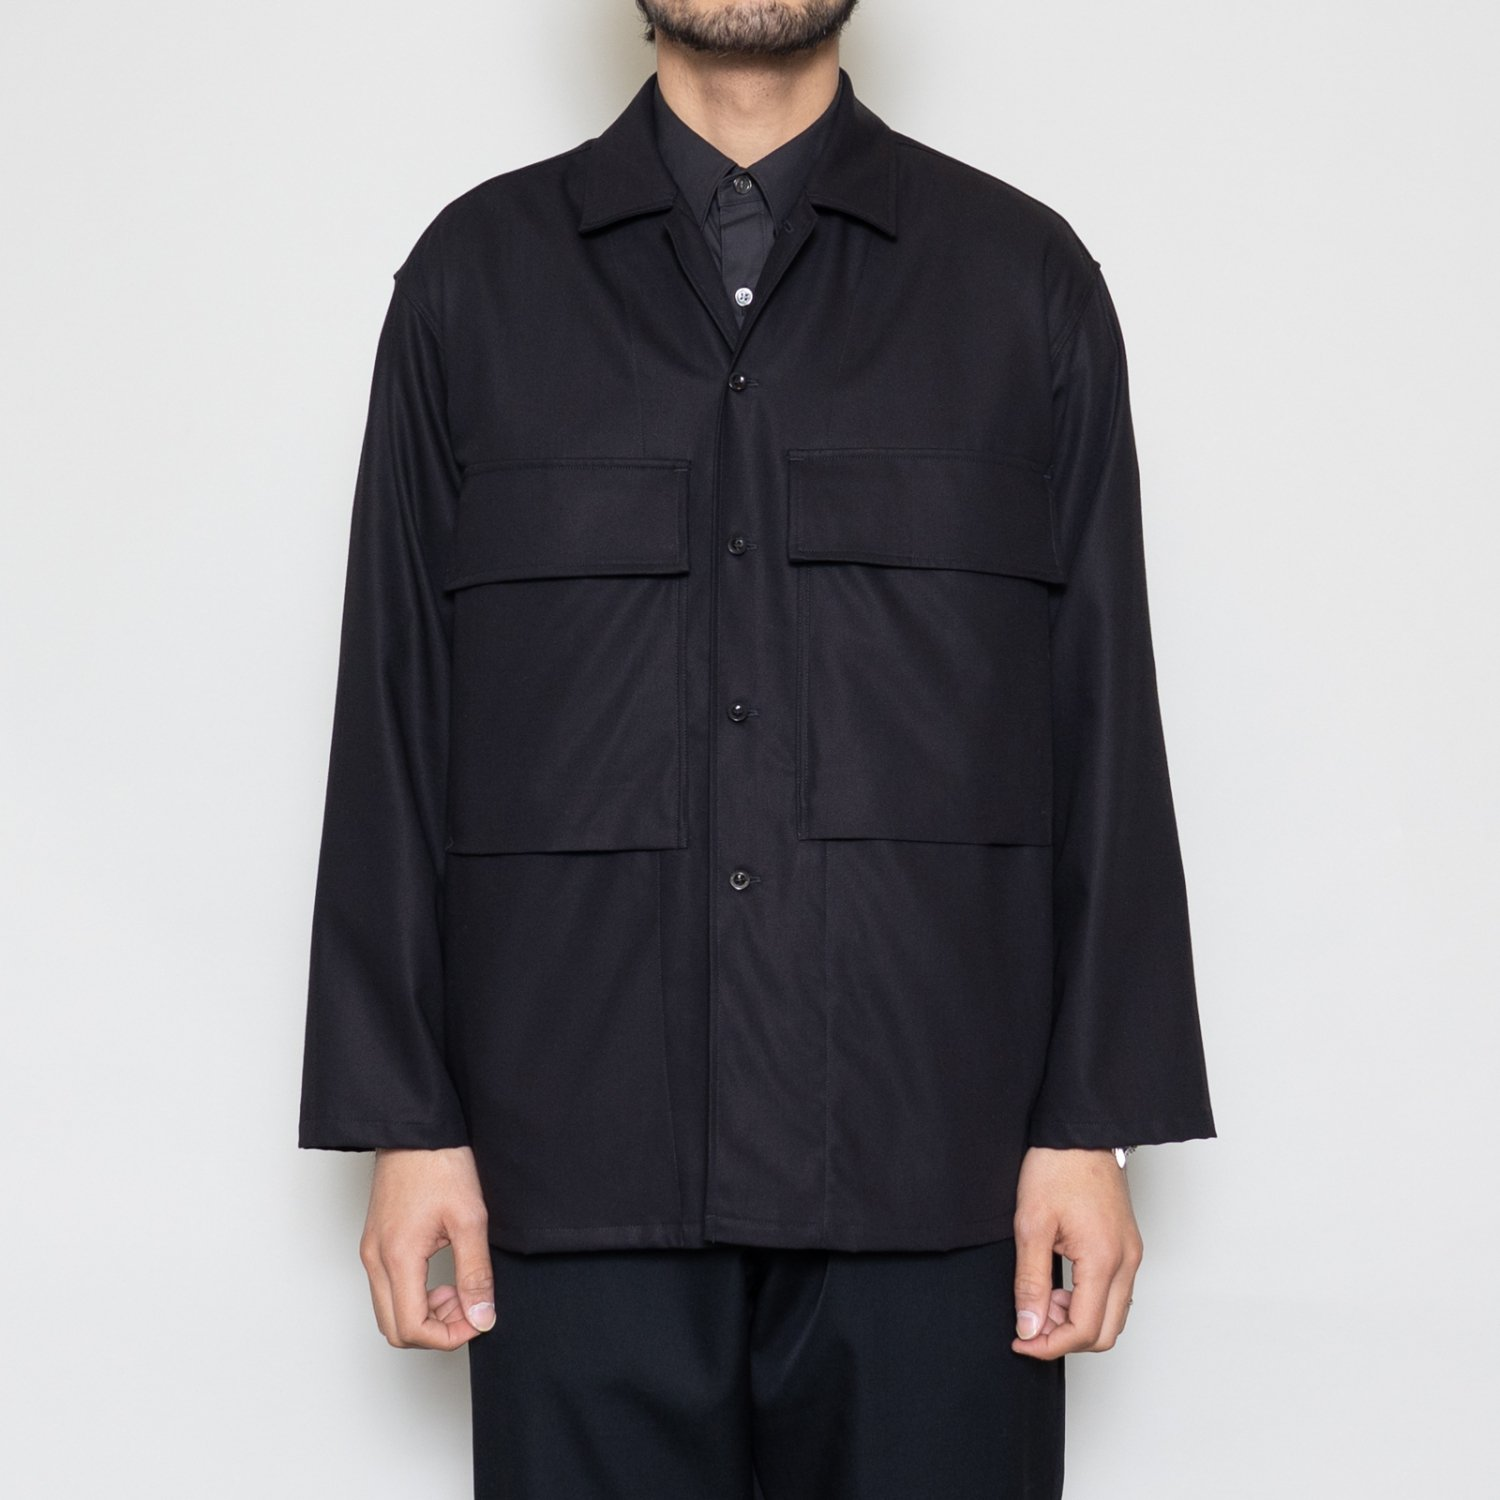 Graphpaper * Wooly Cotton Military Jacket * Black